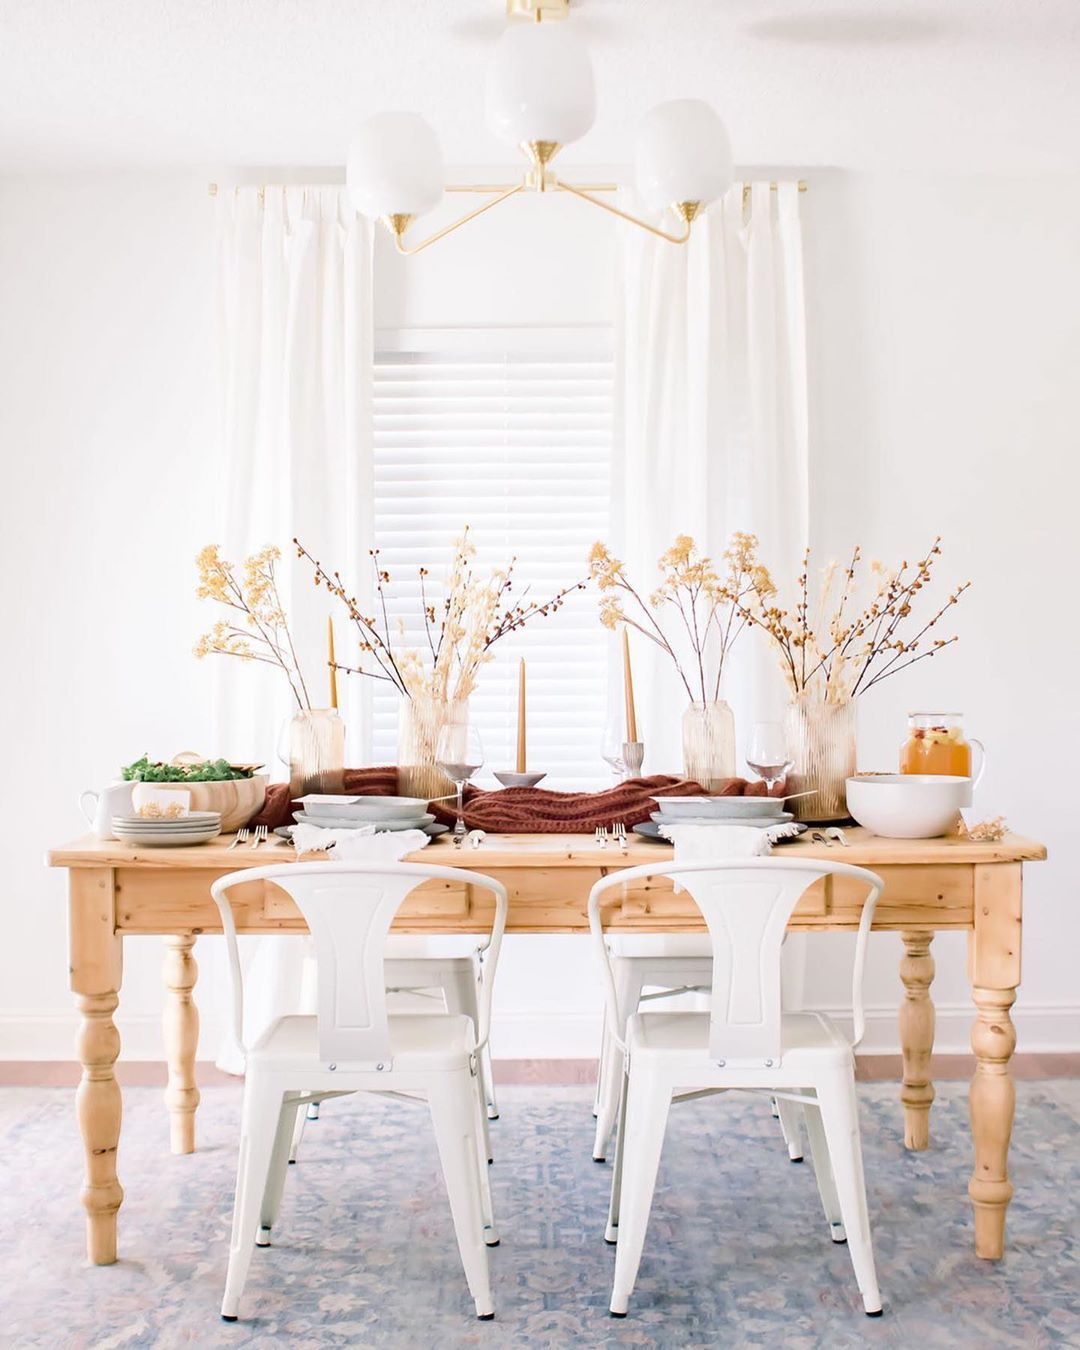 Amazon Home On Instagram Raise Your Hand If You Are Ready For Fall Aka All Things Season We Are Loving Th Fall Tablescapes Decor Dining Room Inspiration